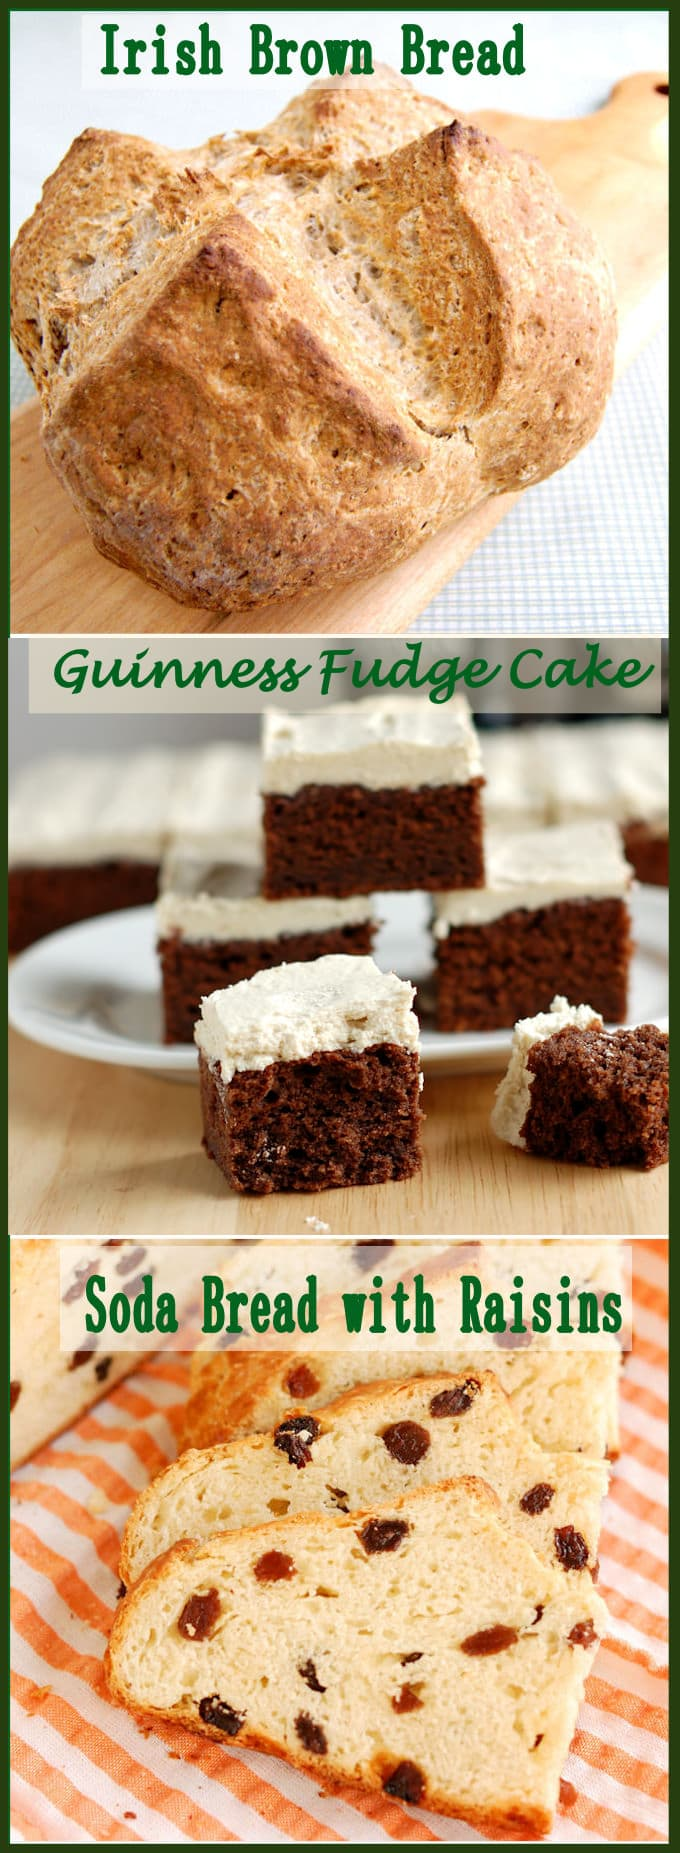 Check out a great collection of my best St. Patrick's Day recipes.